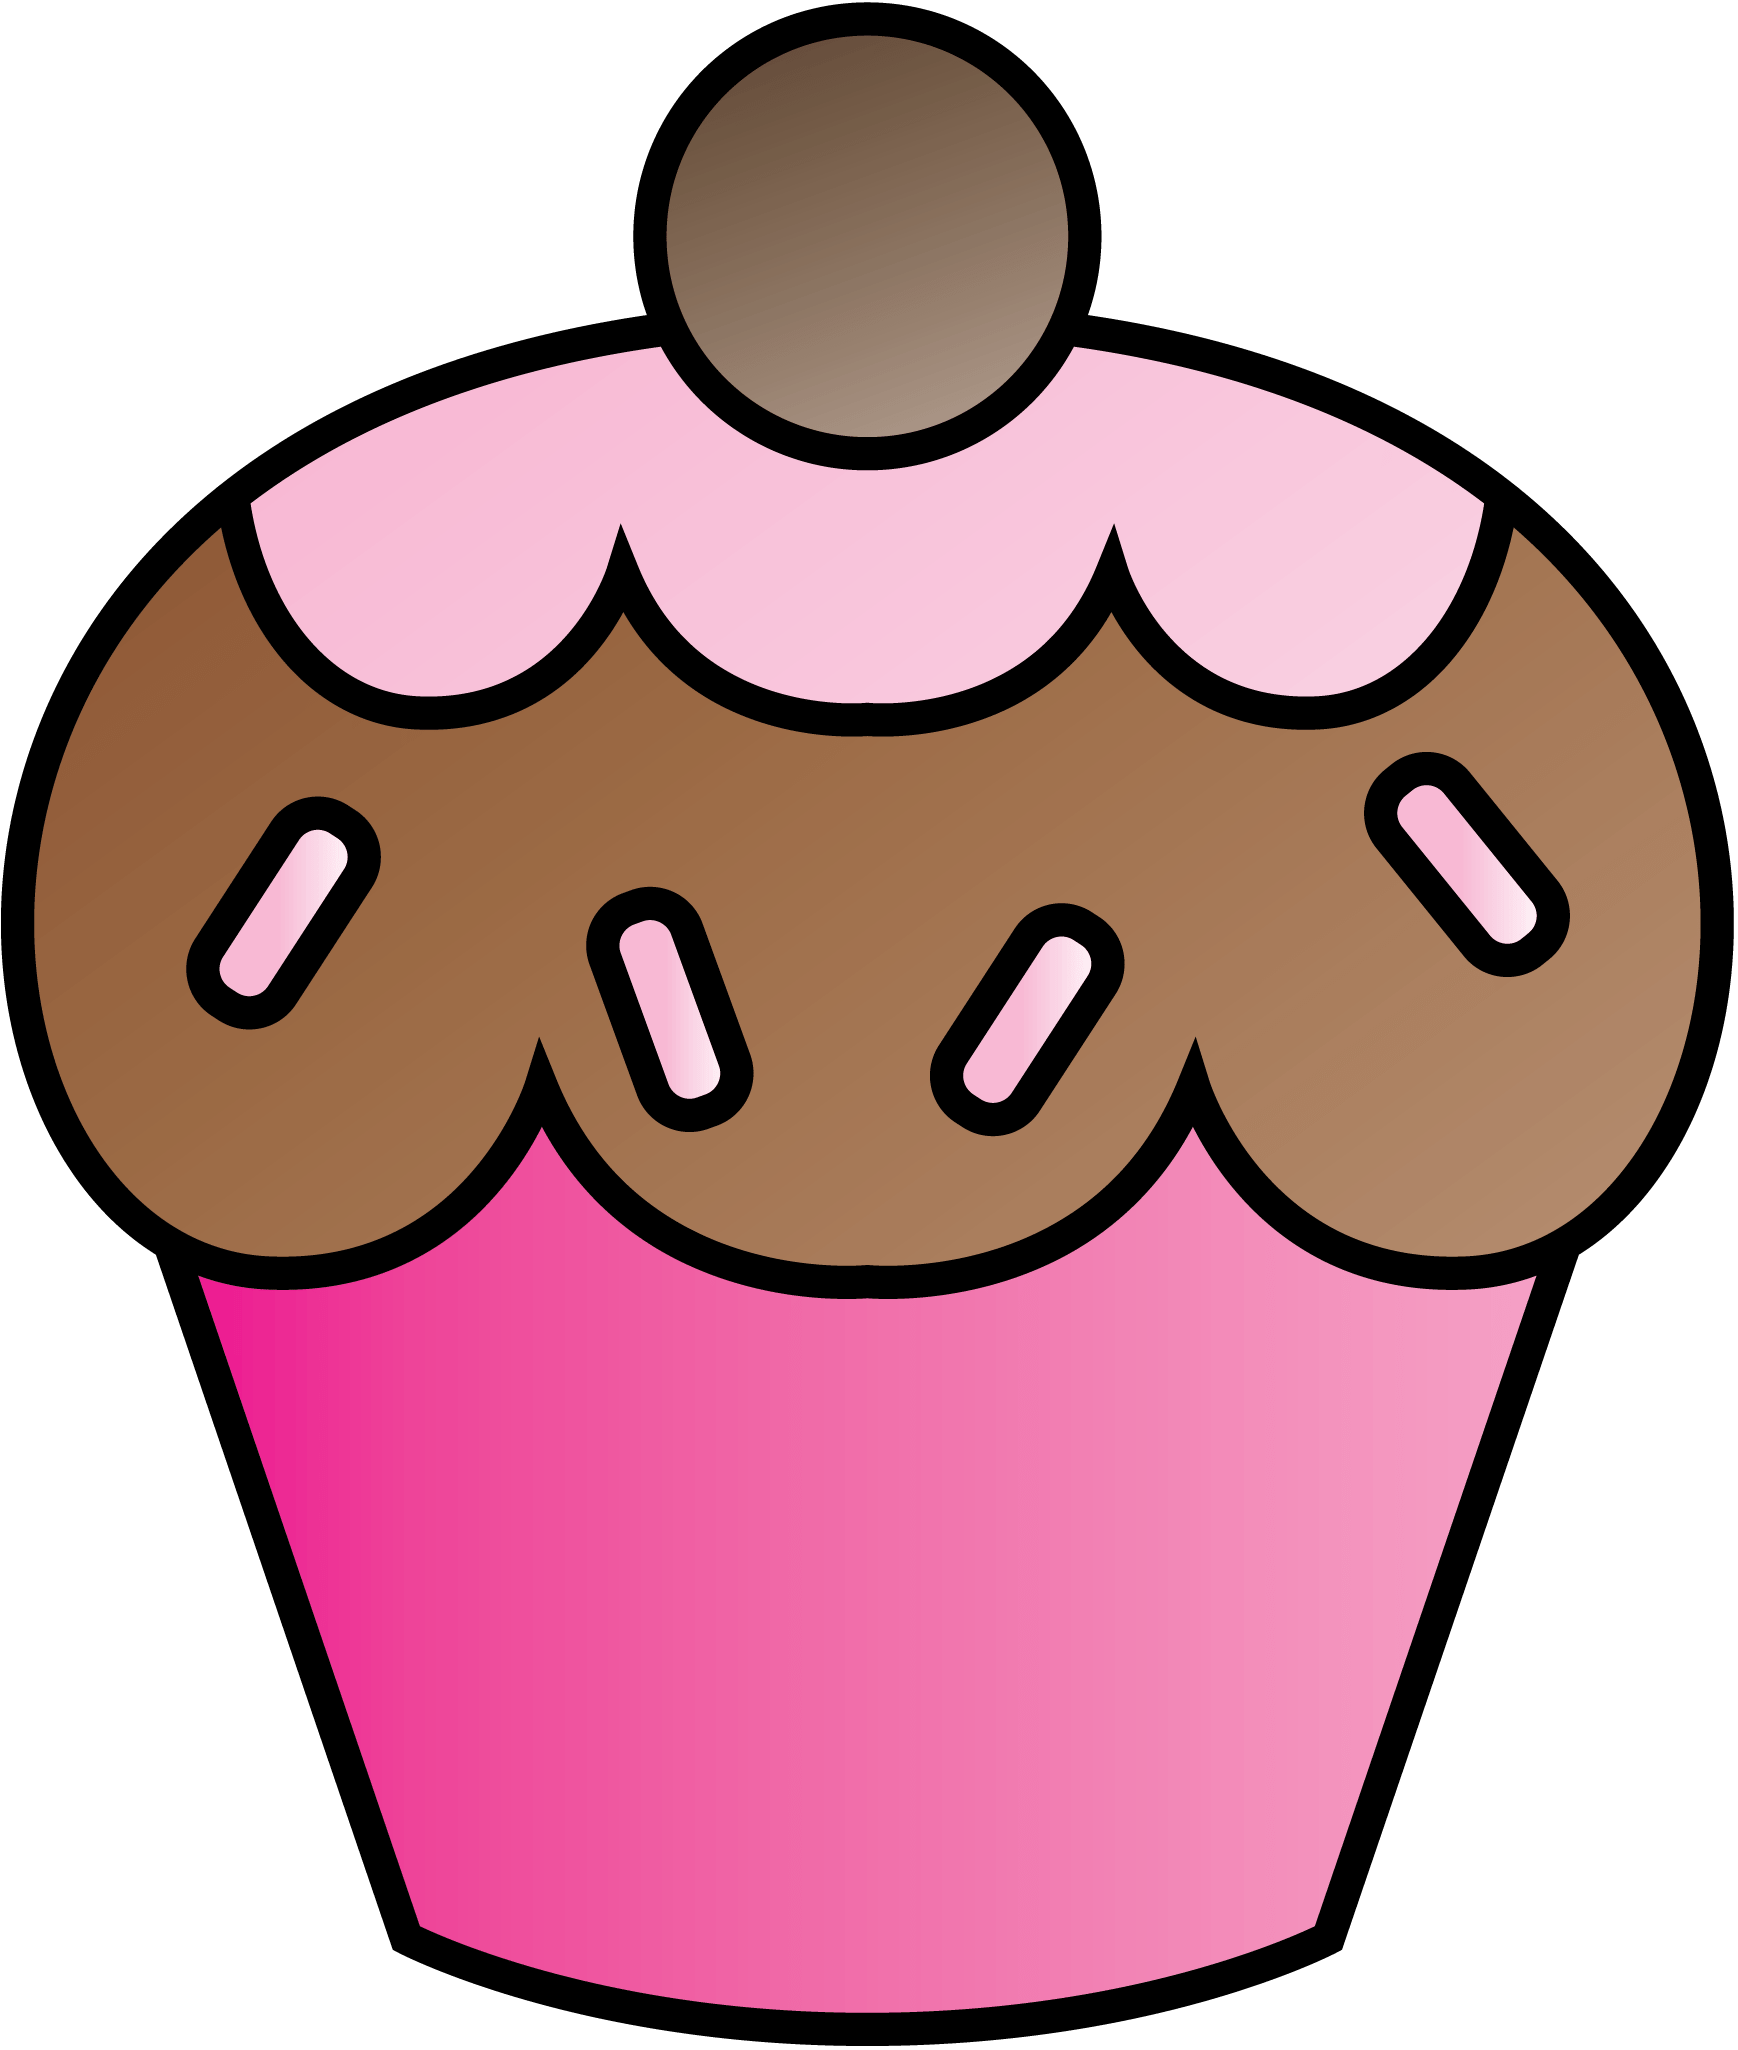 hight resolution of 1738x2050 cupcake art on clip art cupcake and pink cupcakes 2 clipartcow